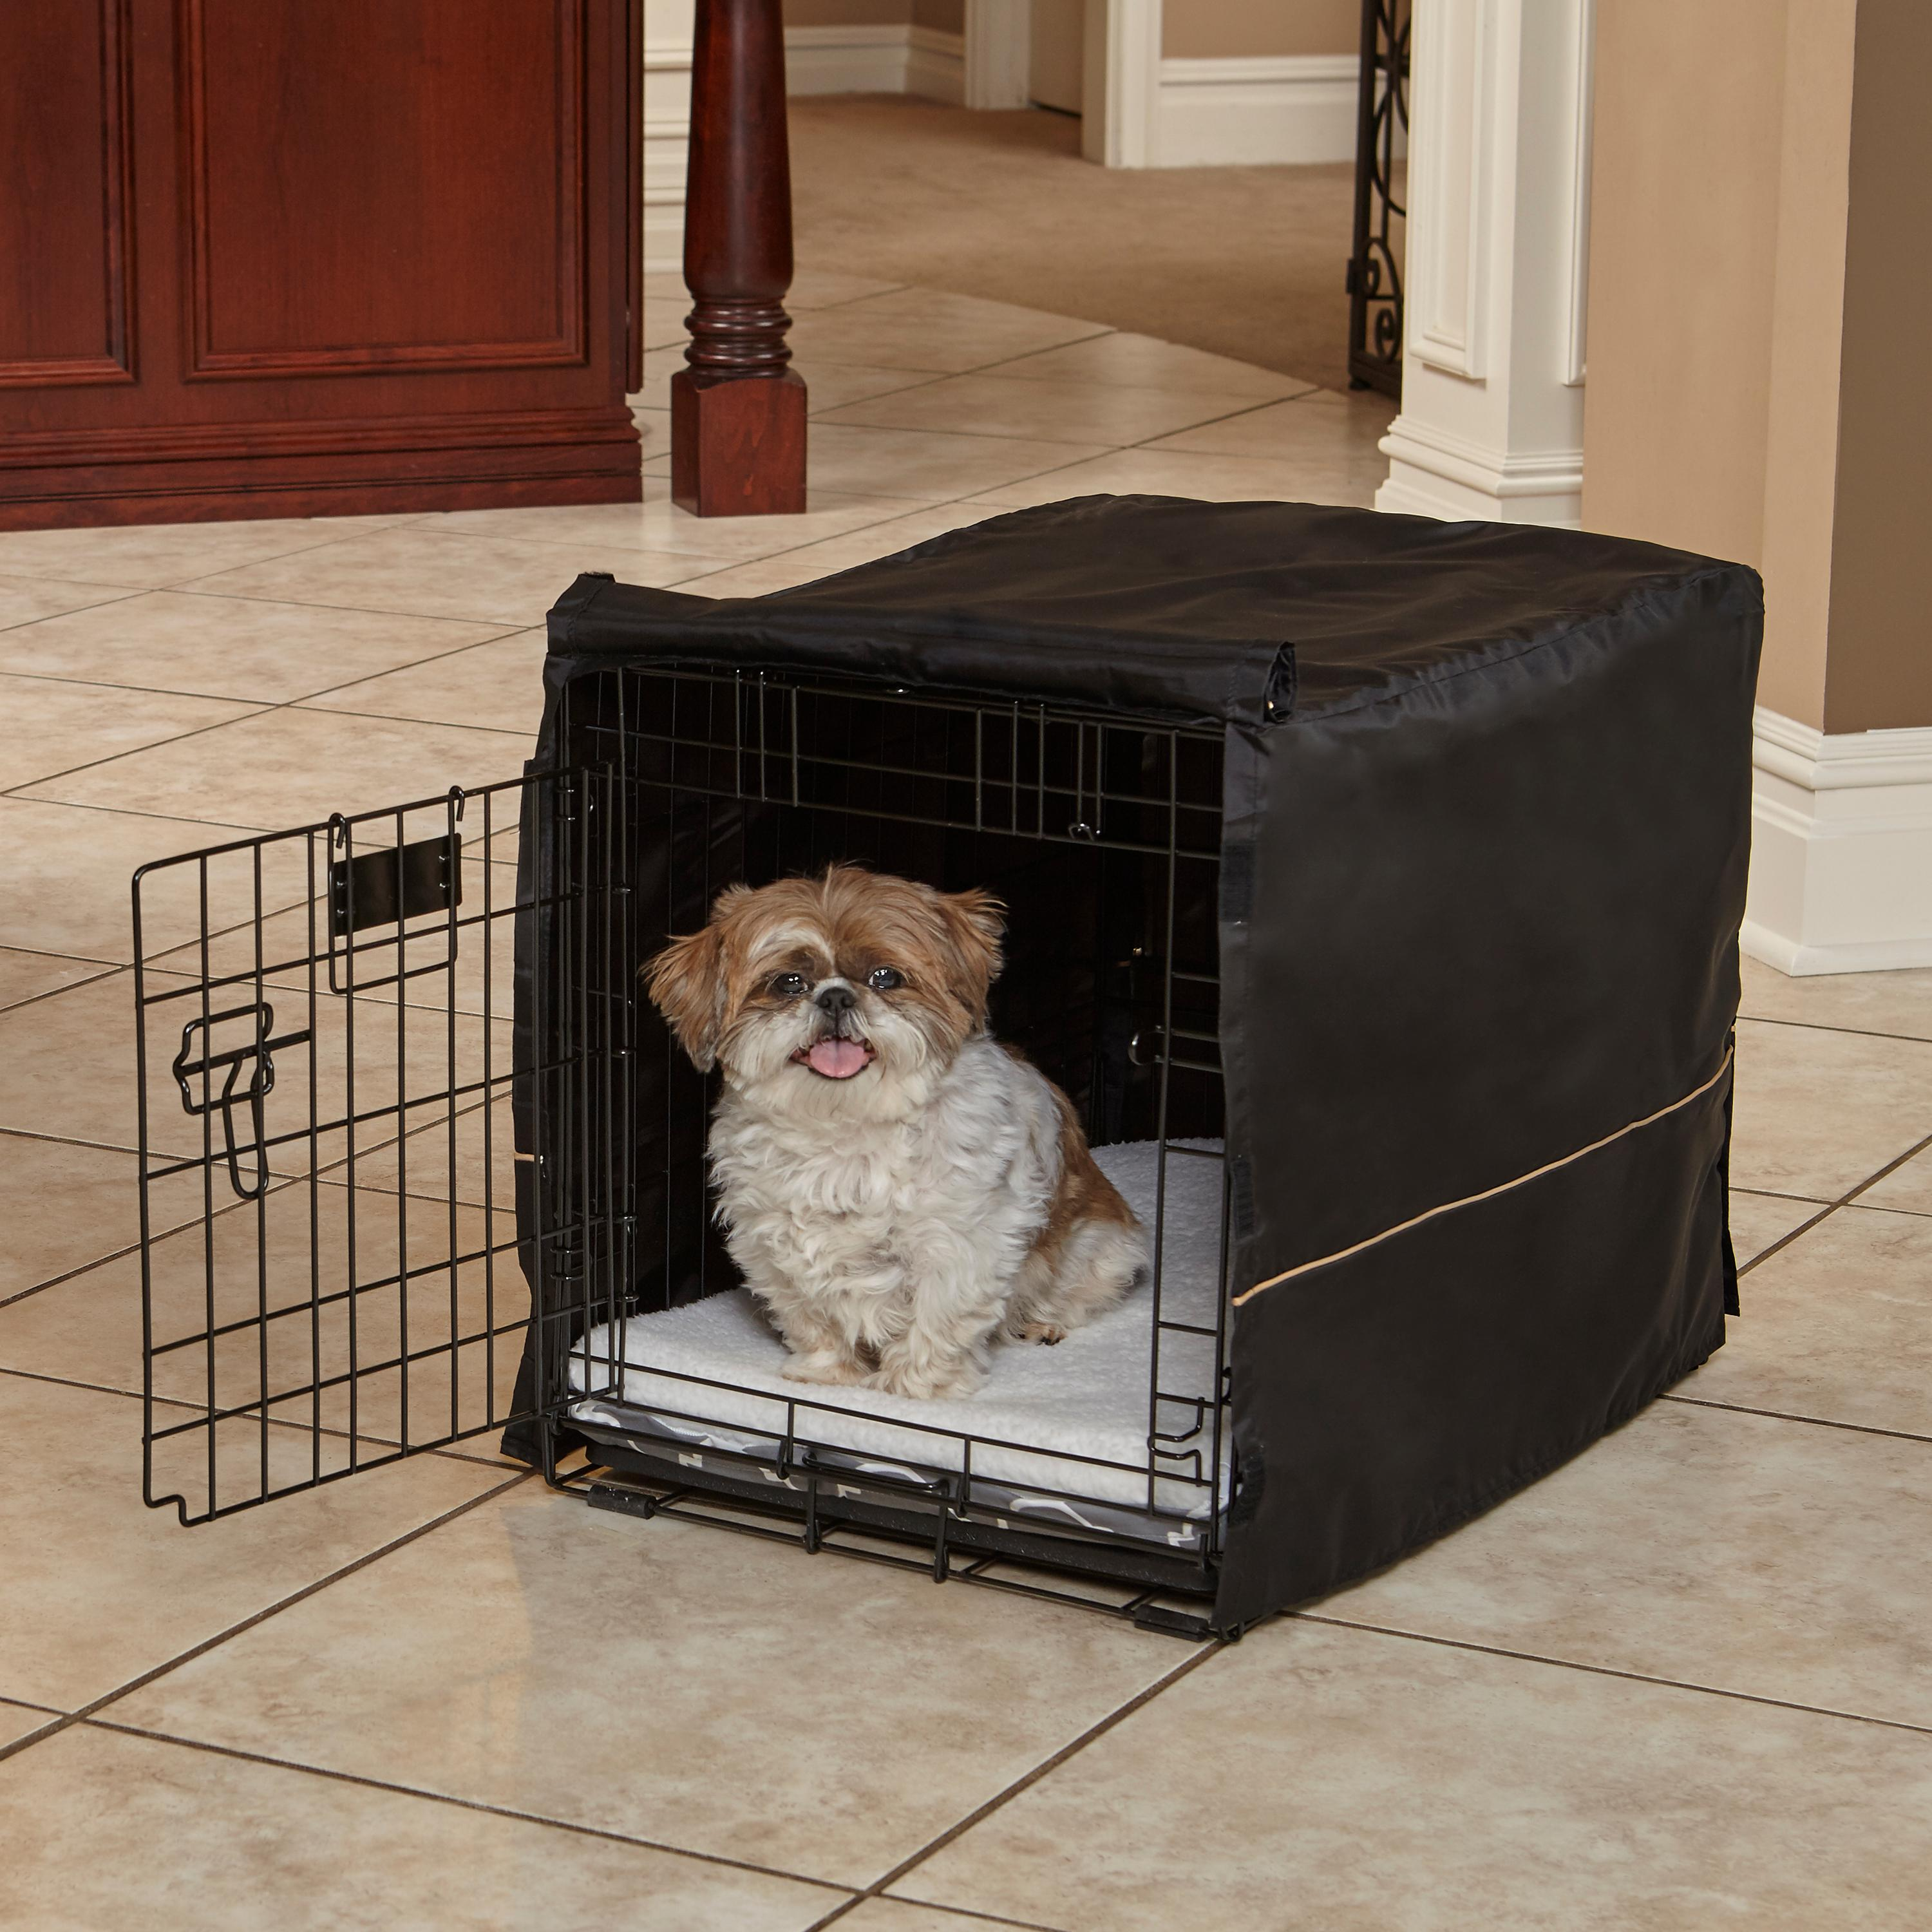 Amazon.com : MidWest Dog Crate Cover, Privacy Dog Crate